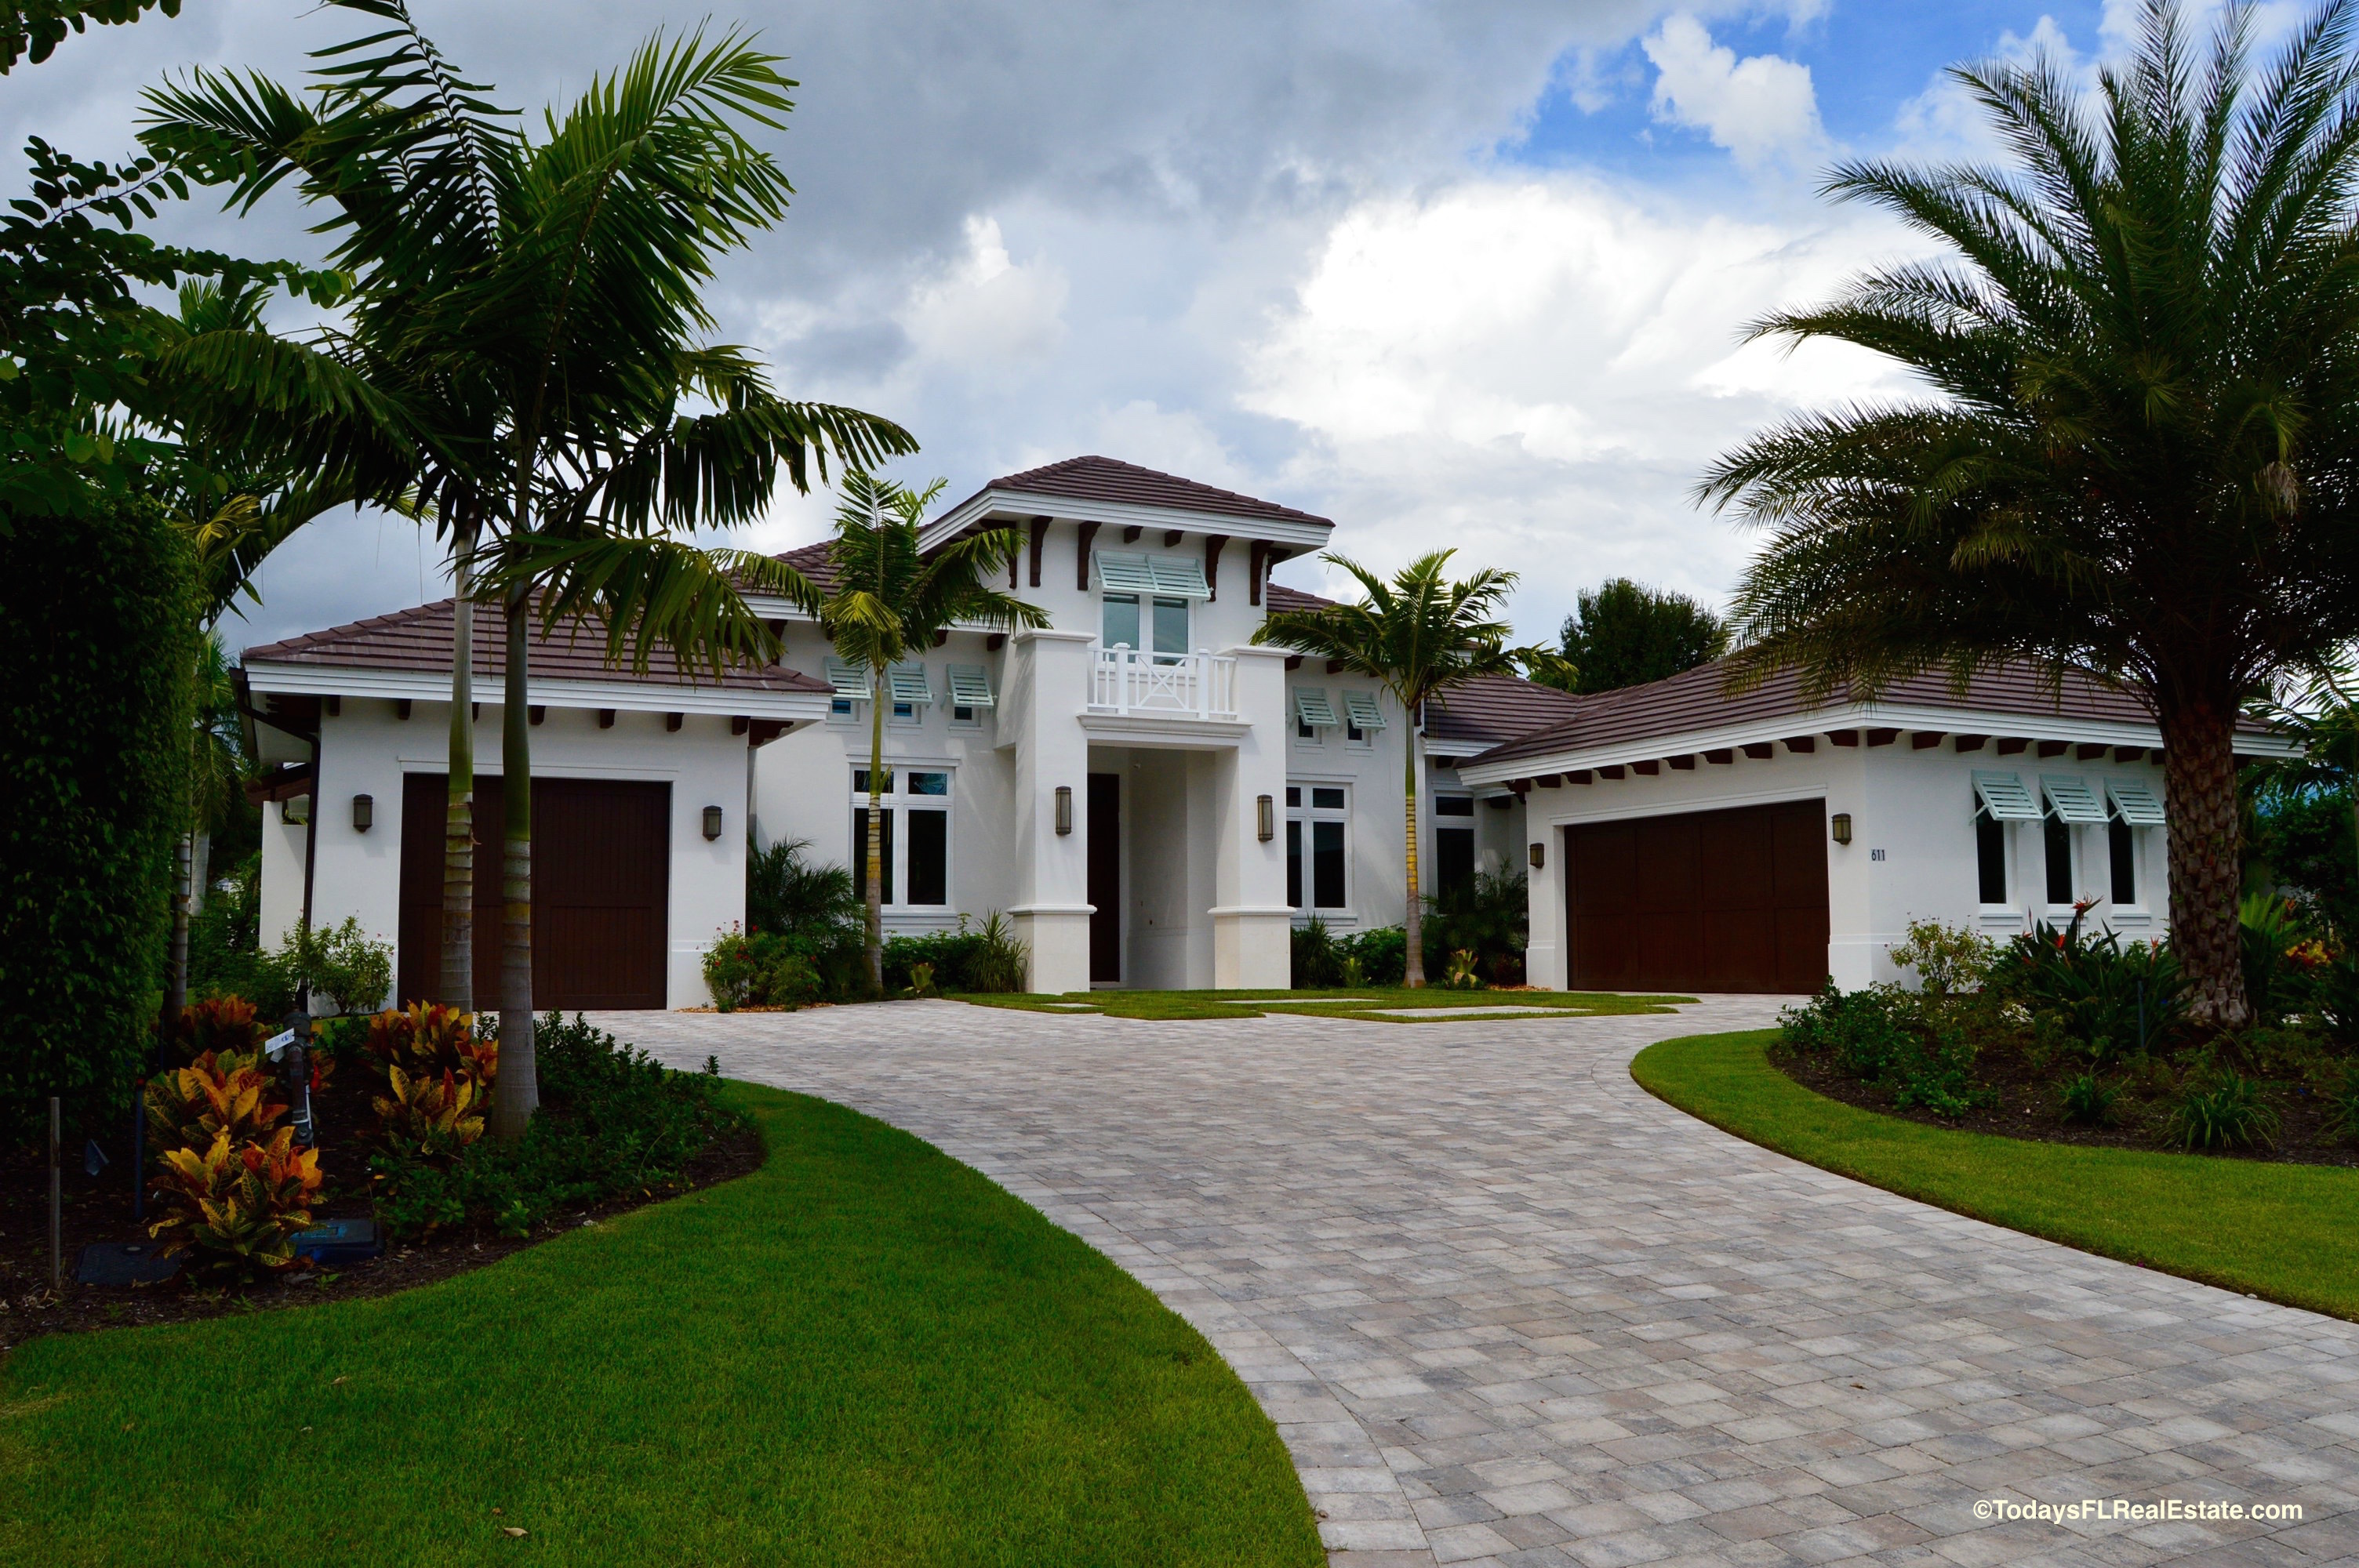 The Moorings Homes for Sale - Naples Florida Real Estate ...